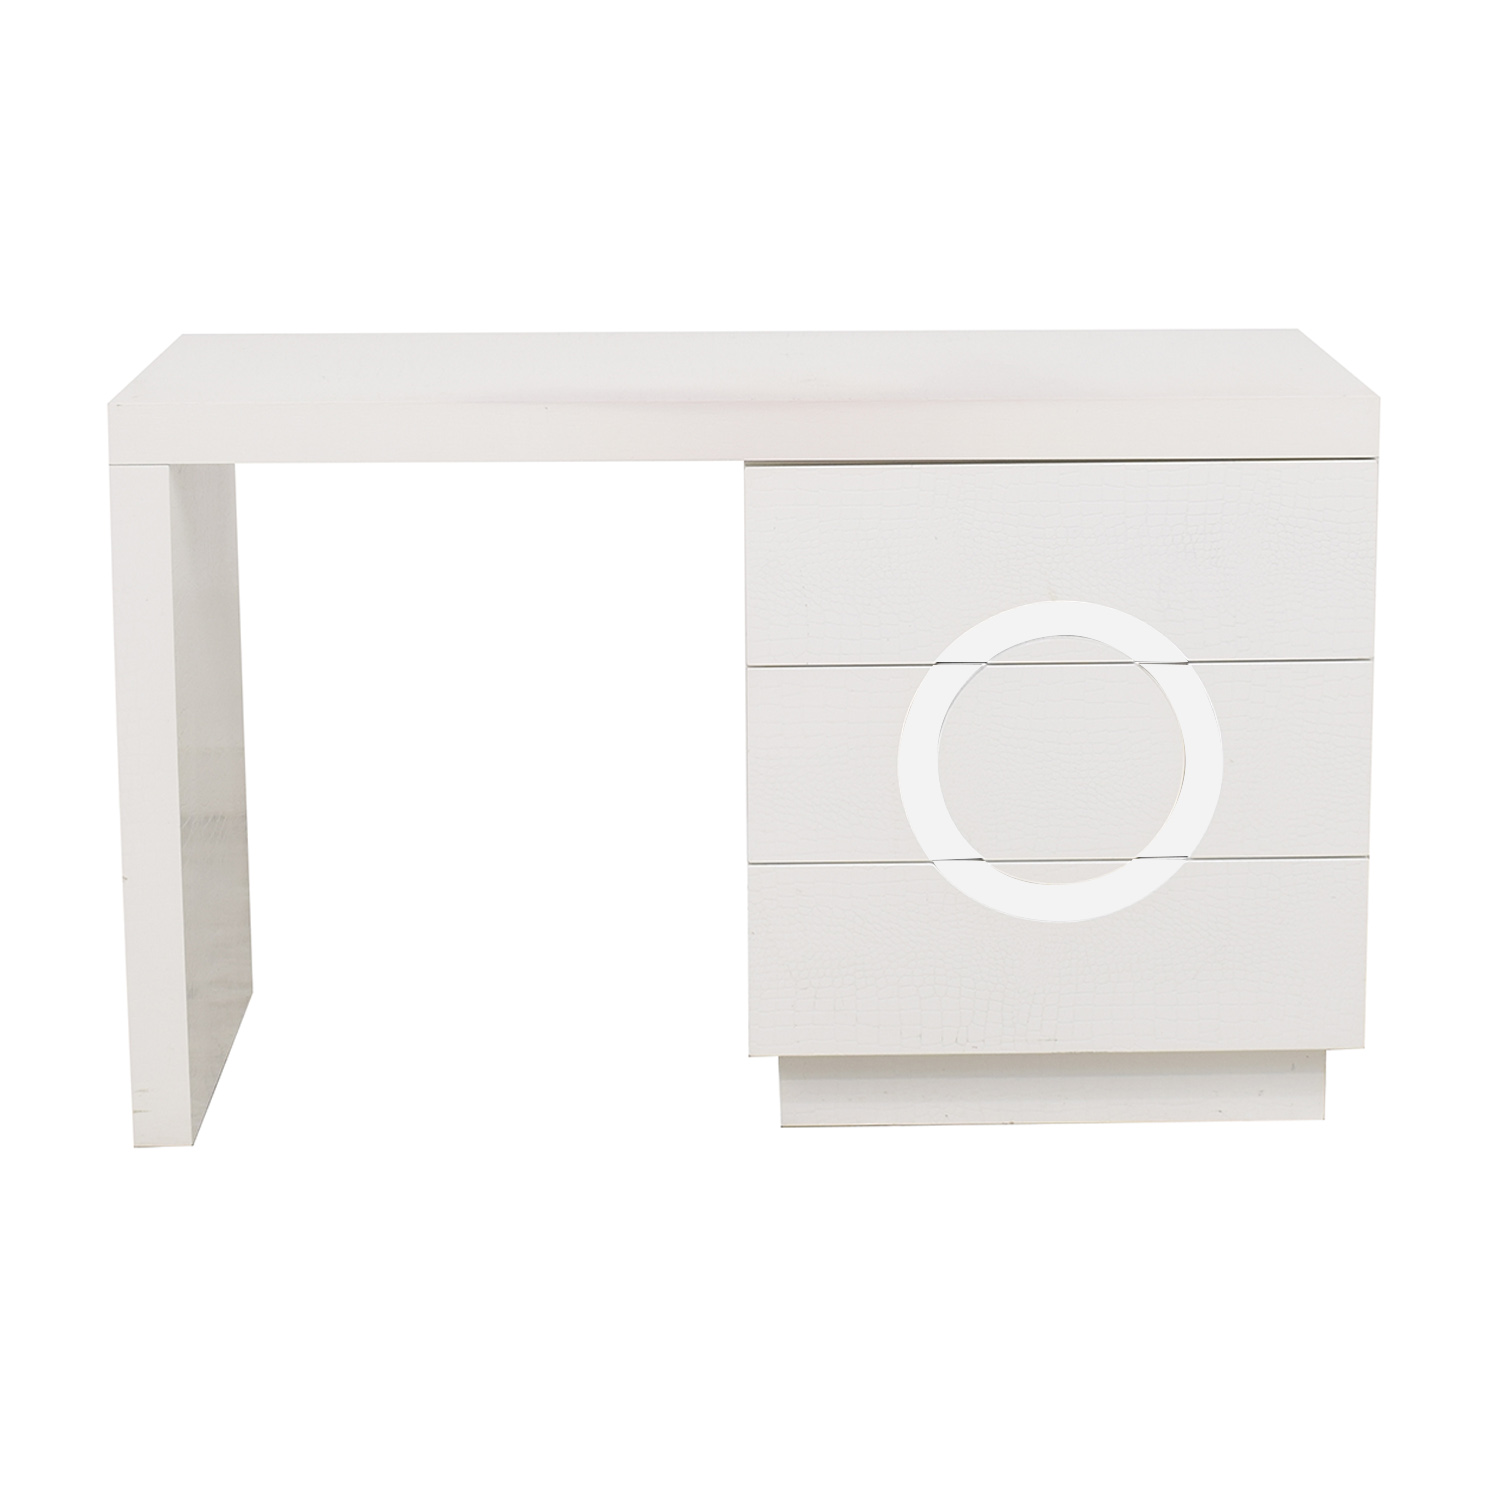 Armani Casa A&X Ovidius Vanity Table Storage